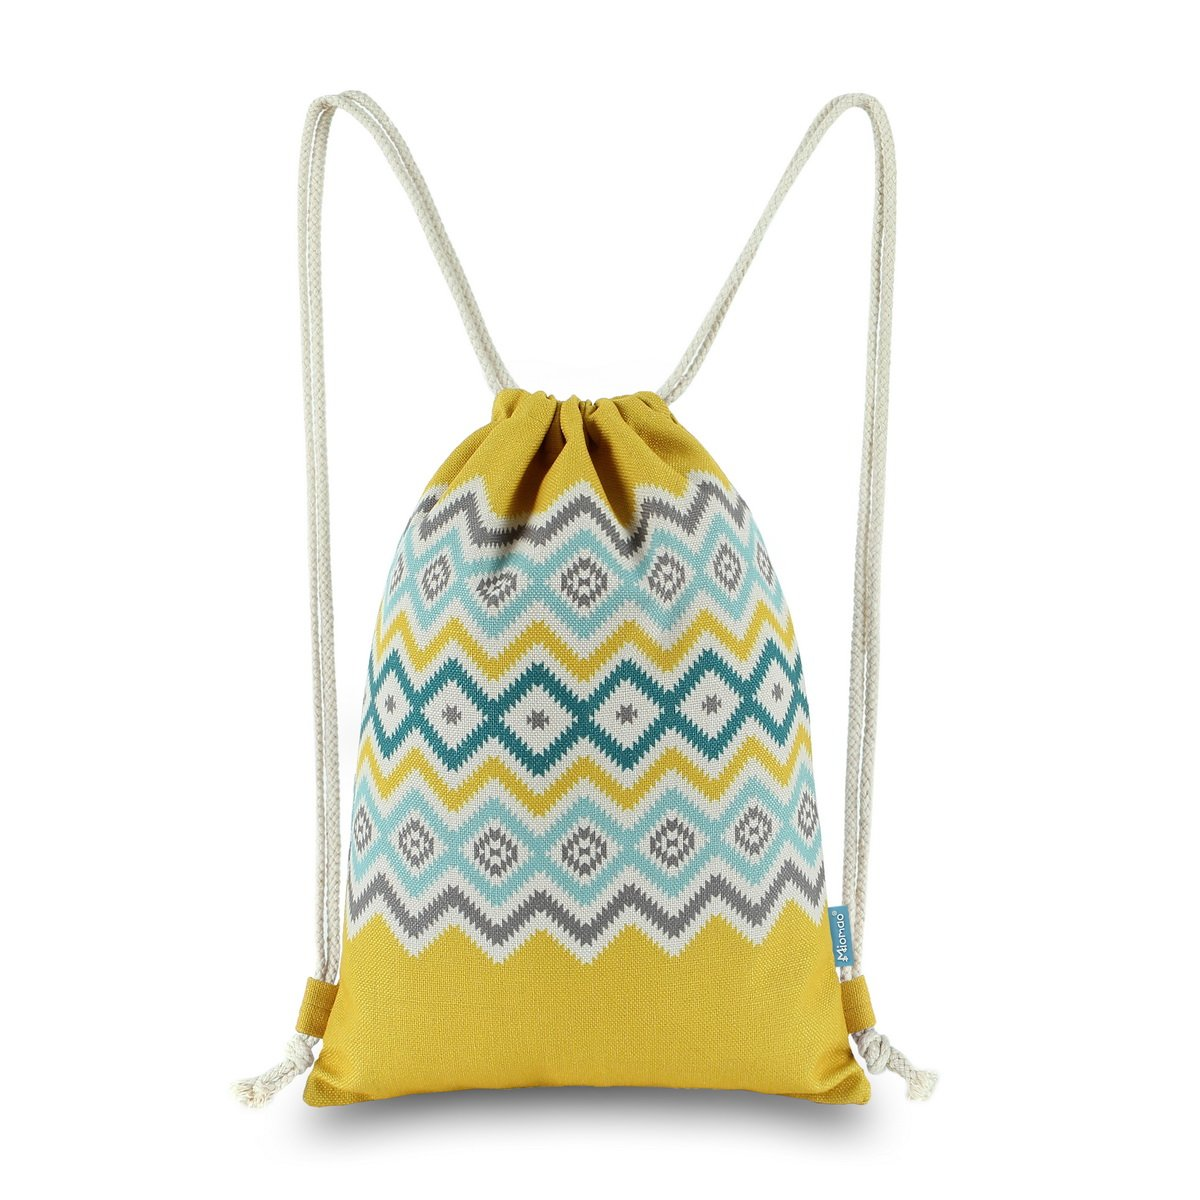 Miomao Drawstring Backpack Gym Sack Pack Bohemia Style String Bag Boho Sinch Sack Canvas Cinch Pack Sport Gift Bags For Men & Women 13 X 18 Inches Yellow